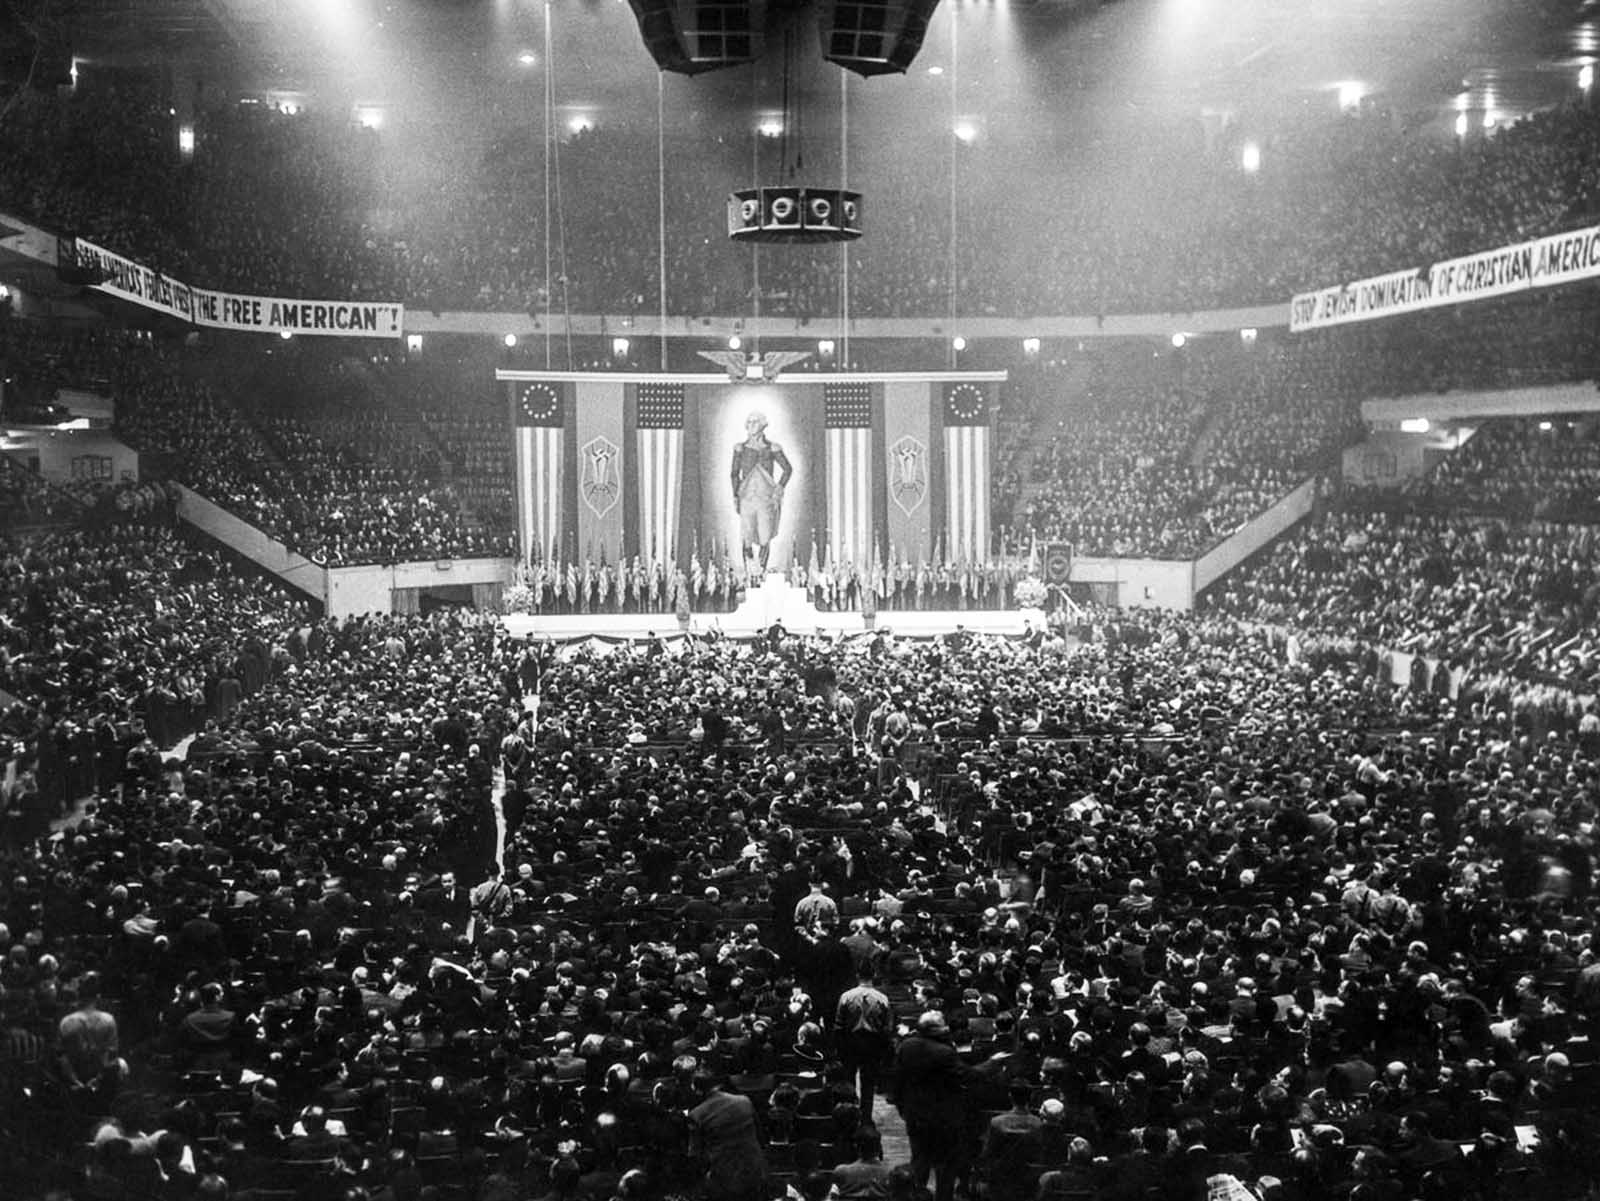 More than twenty thousand attend a meeting of the German American Bund, which included banners such as